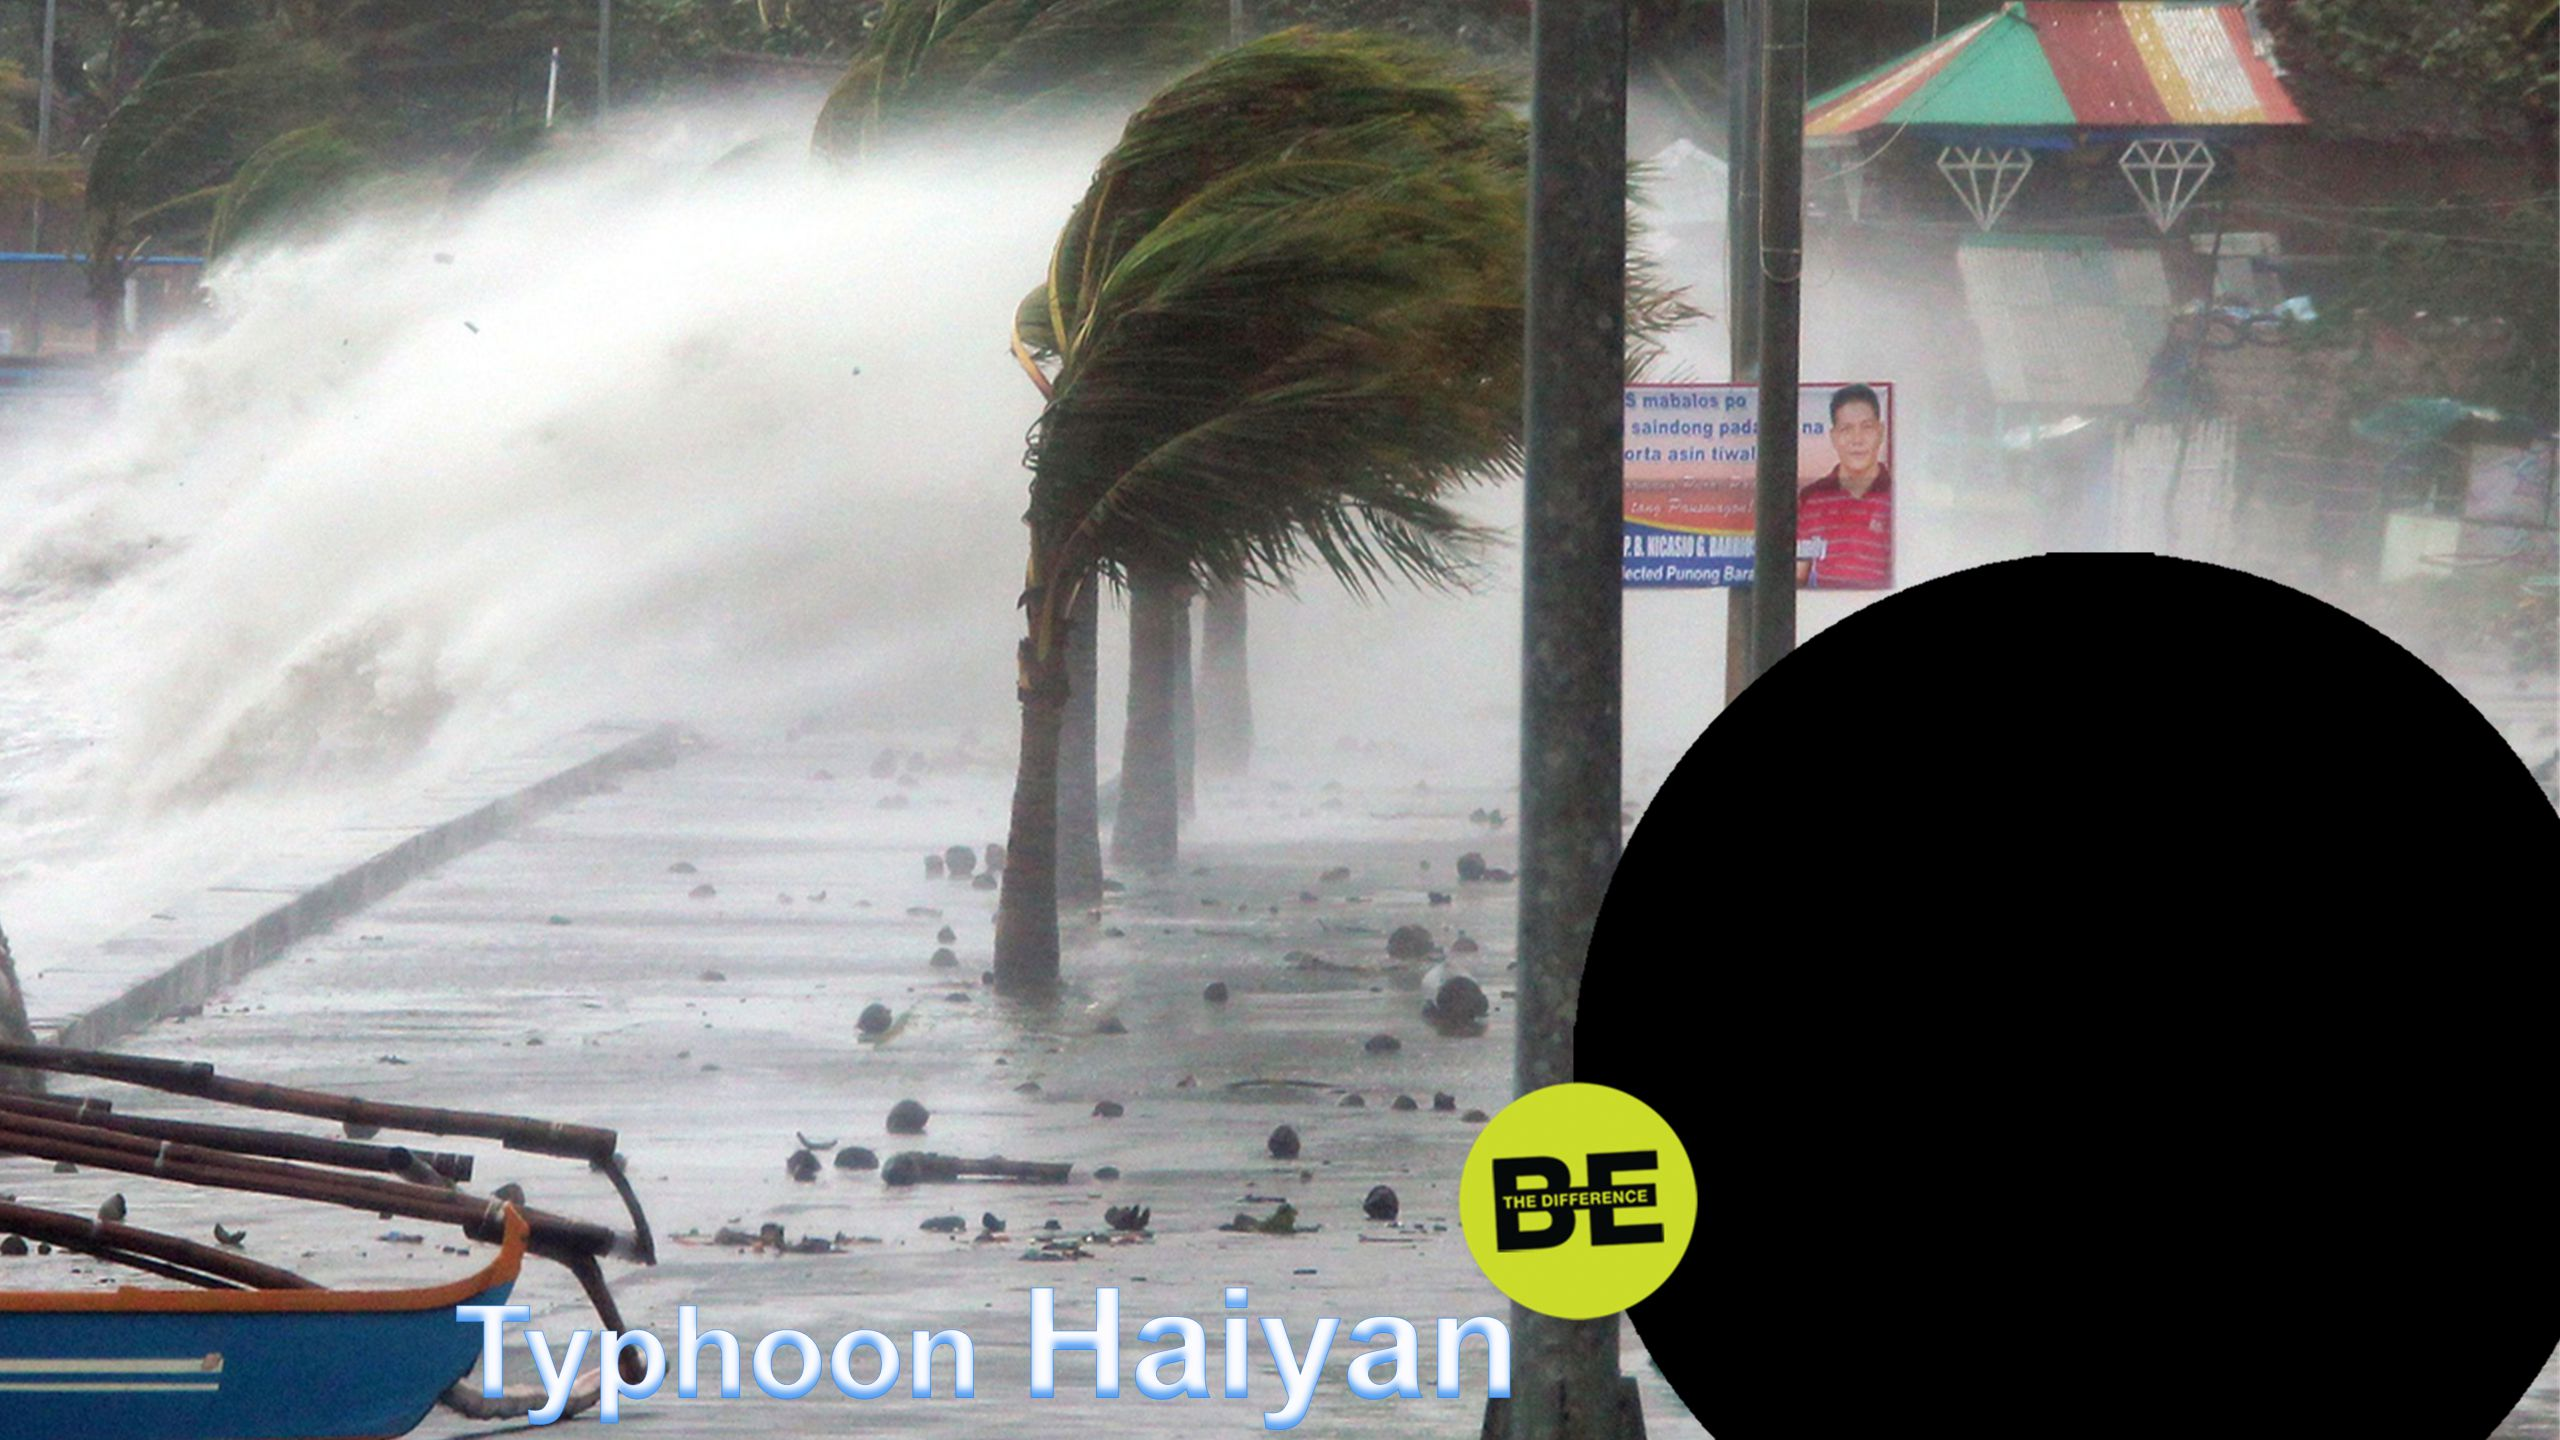 Example: Typhoon Haiyan that hit the Philippines on 7 November 2013